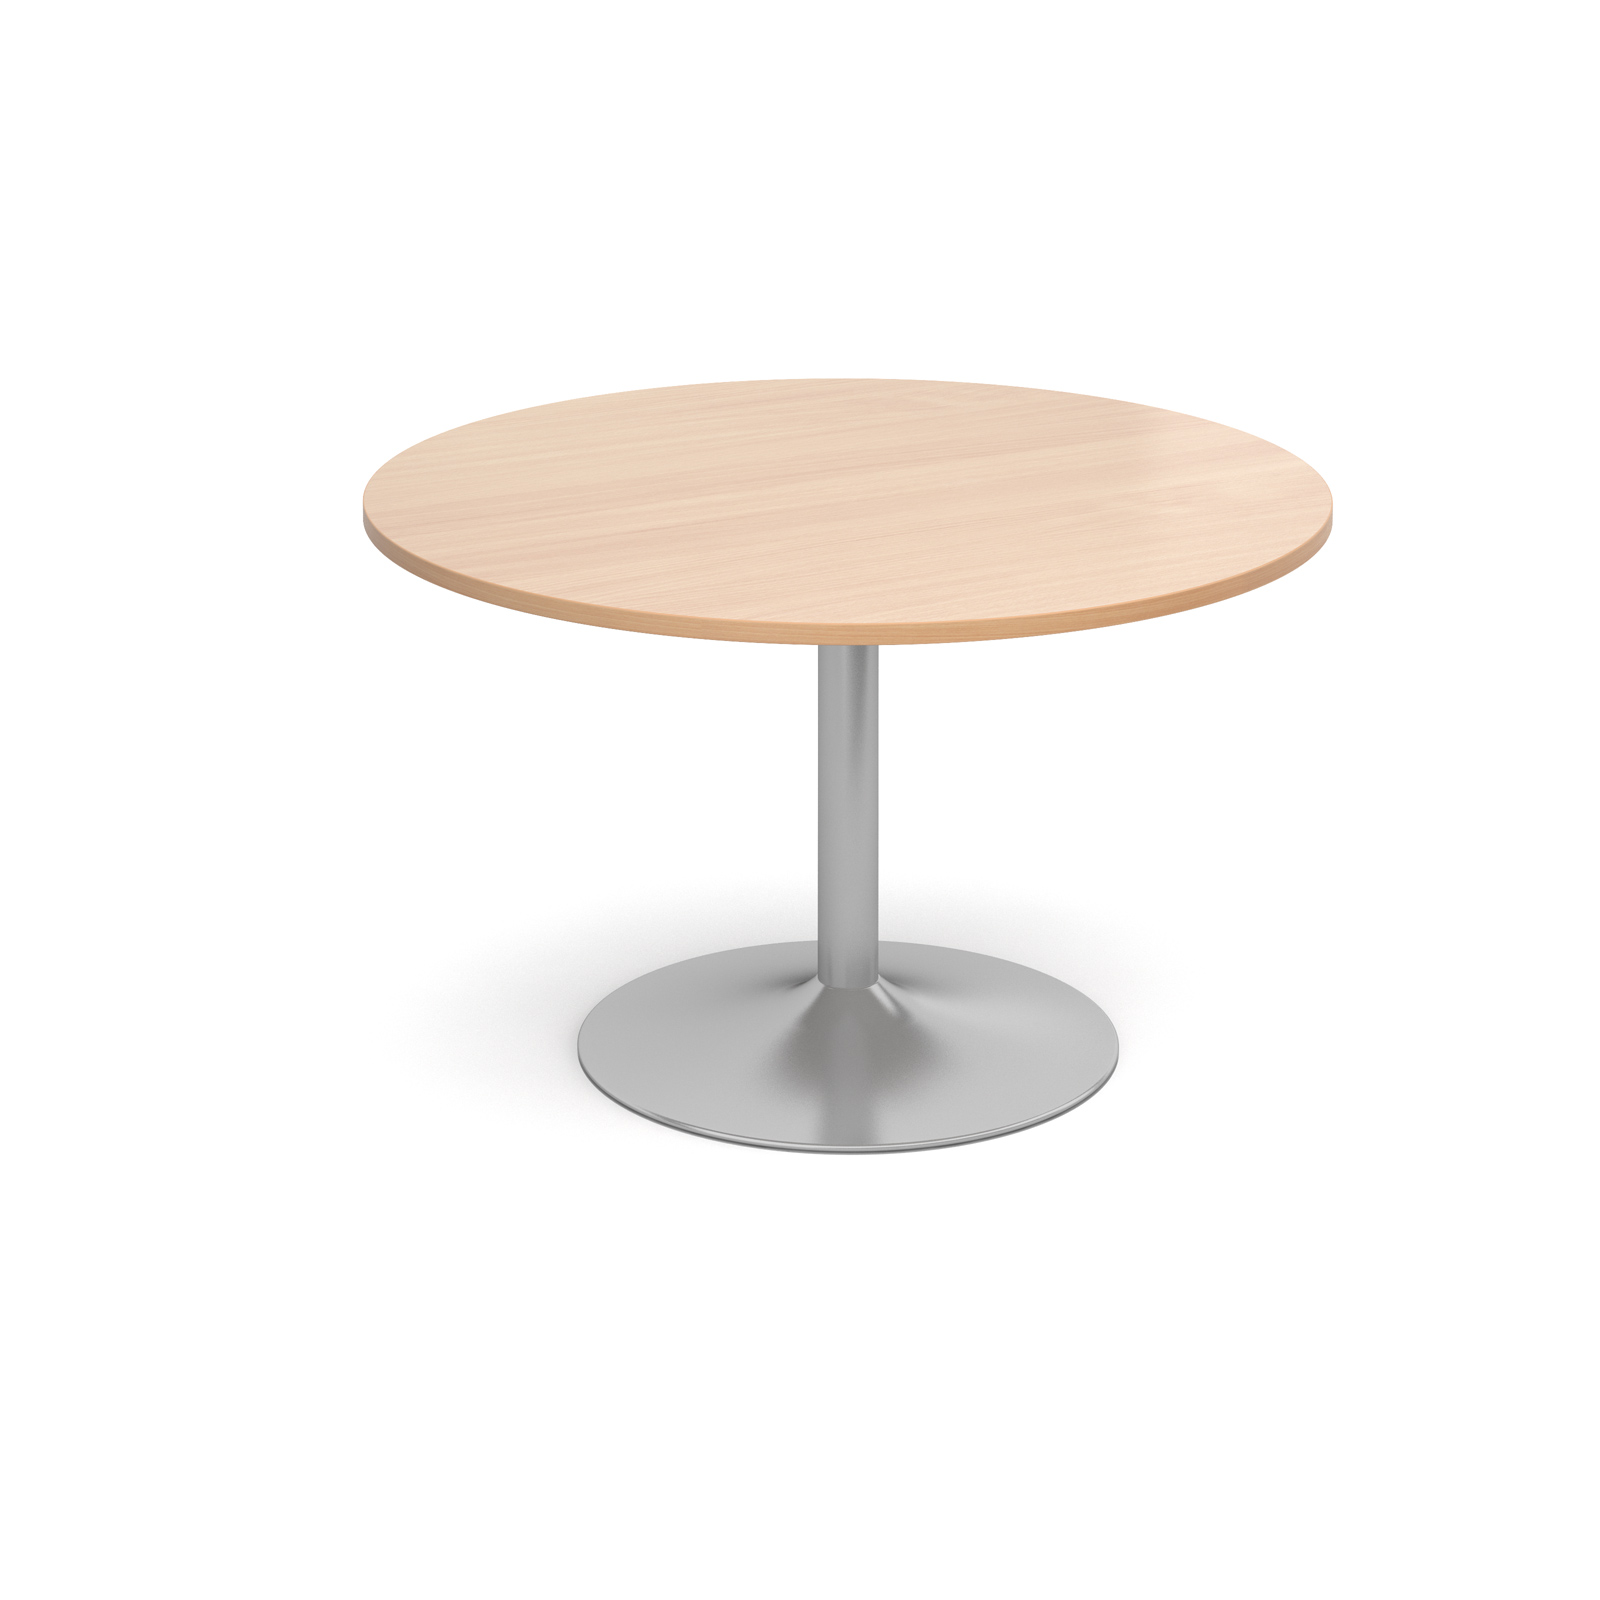 1200 Dia Circular Trumpet Base Boardroom Table 25mm Top -  Beech